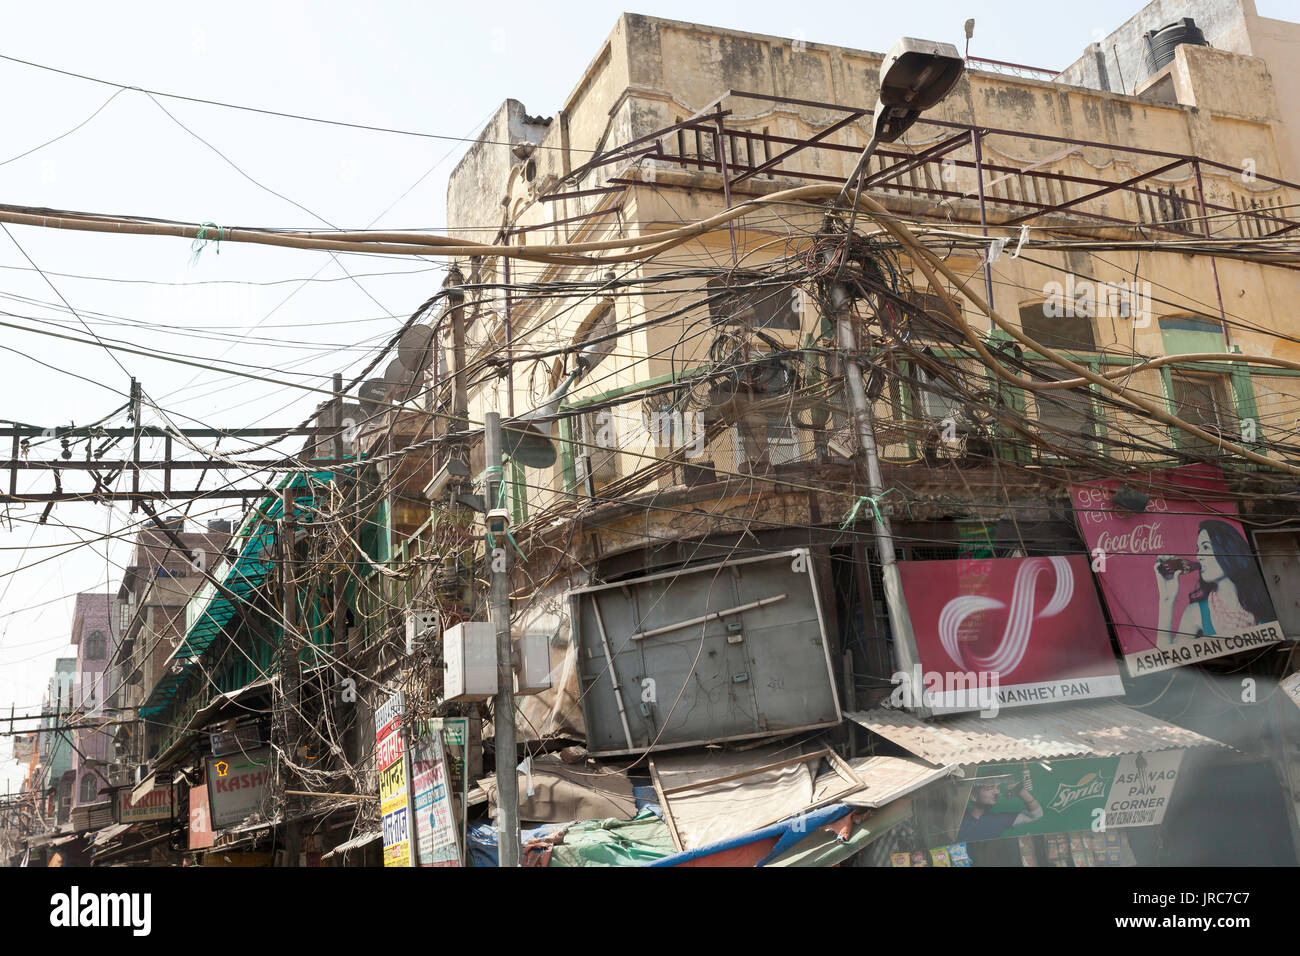 electrical wiring in delhi india on the street stock photo rh alamy com India Electrical Power India Telephone Wiring